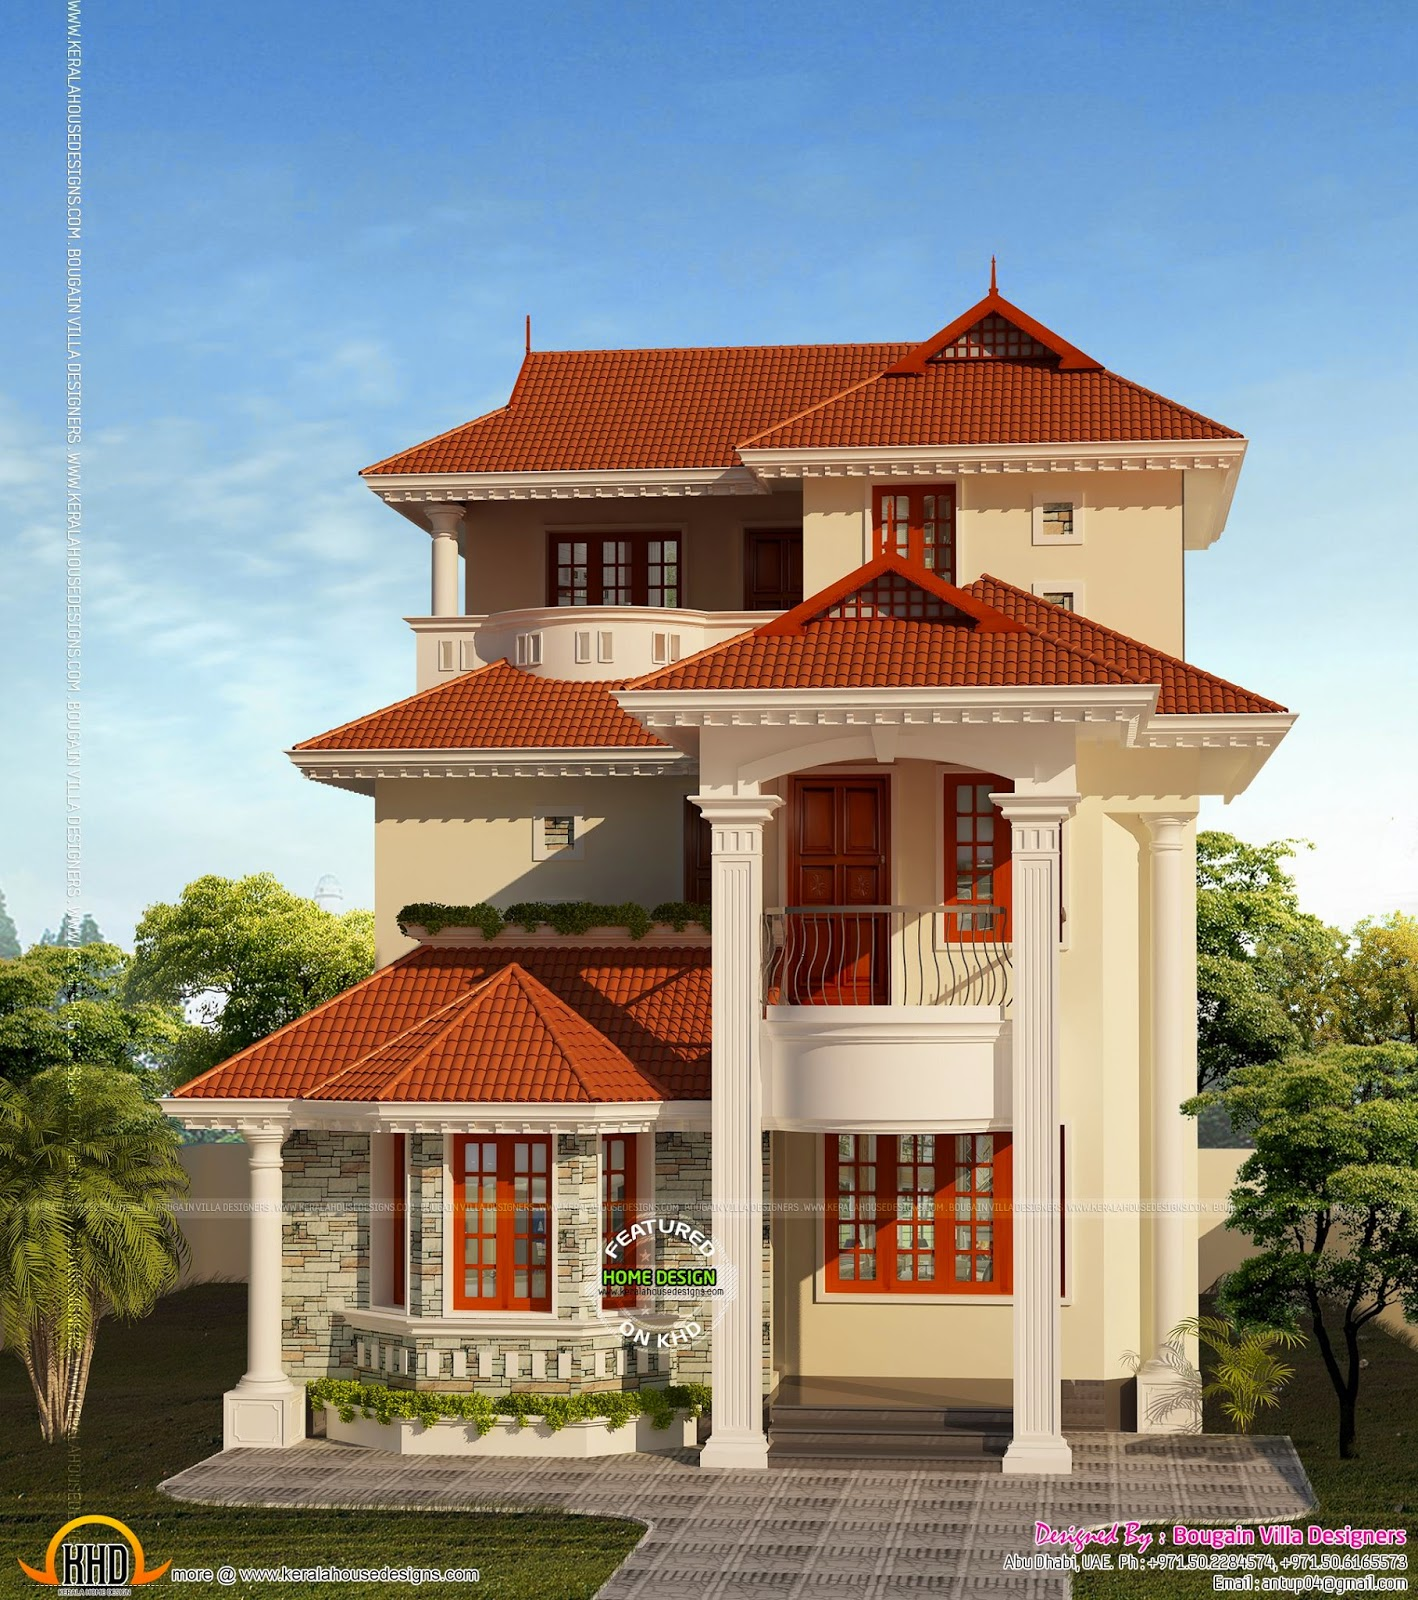 Small plot house plan kerala home design and floor plans for Small house plans and designs